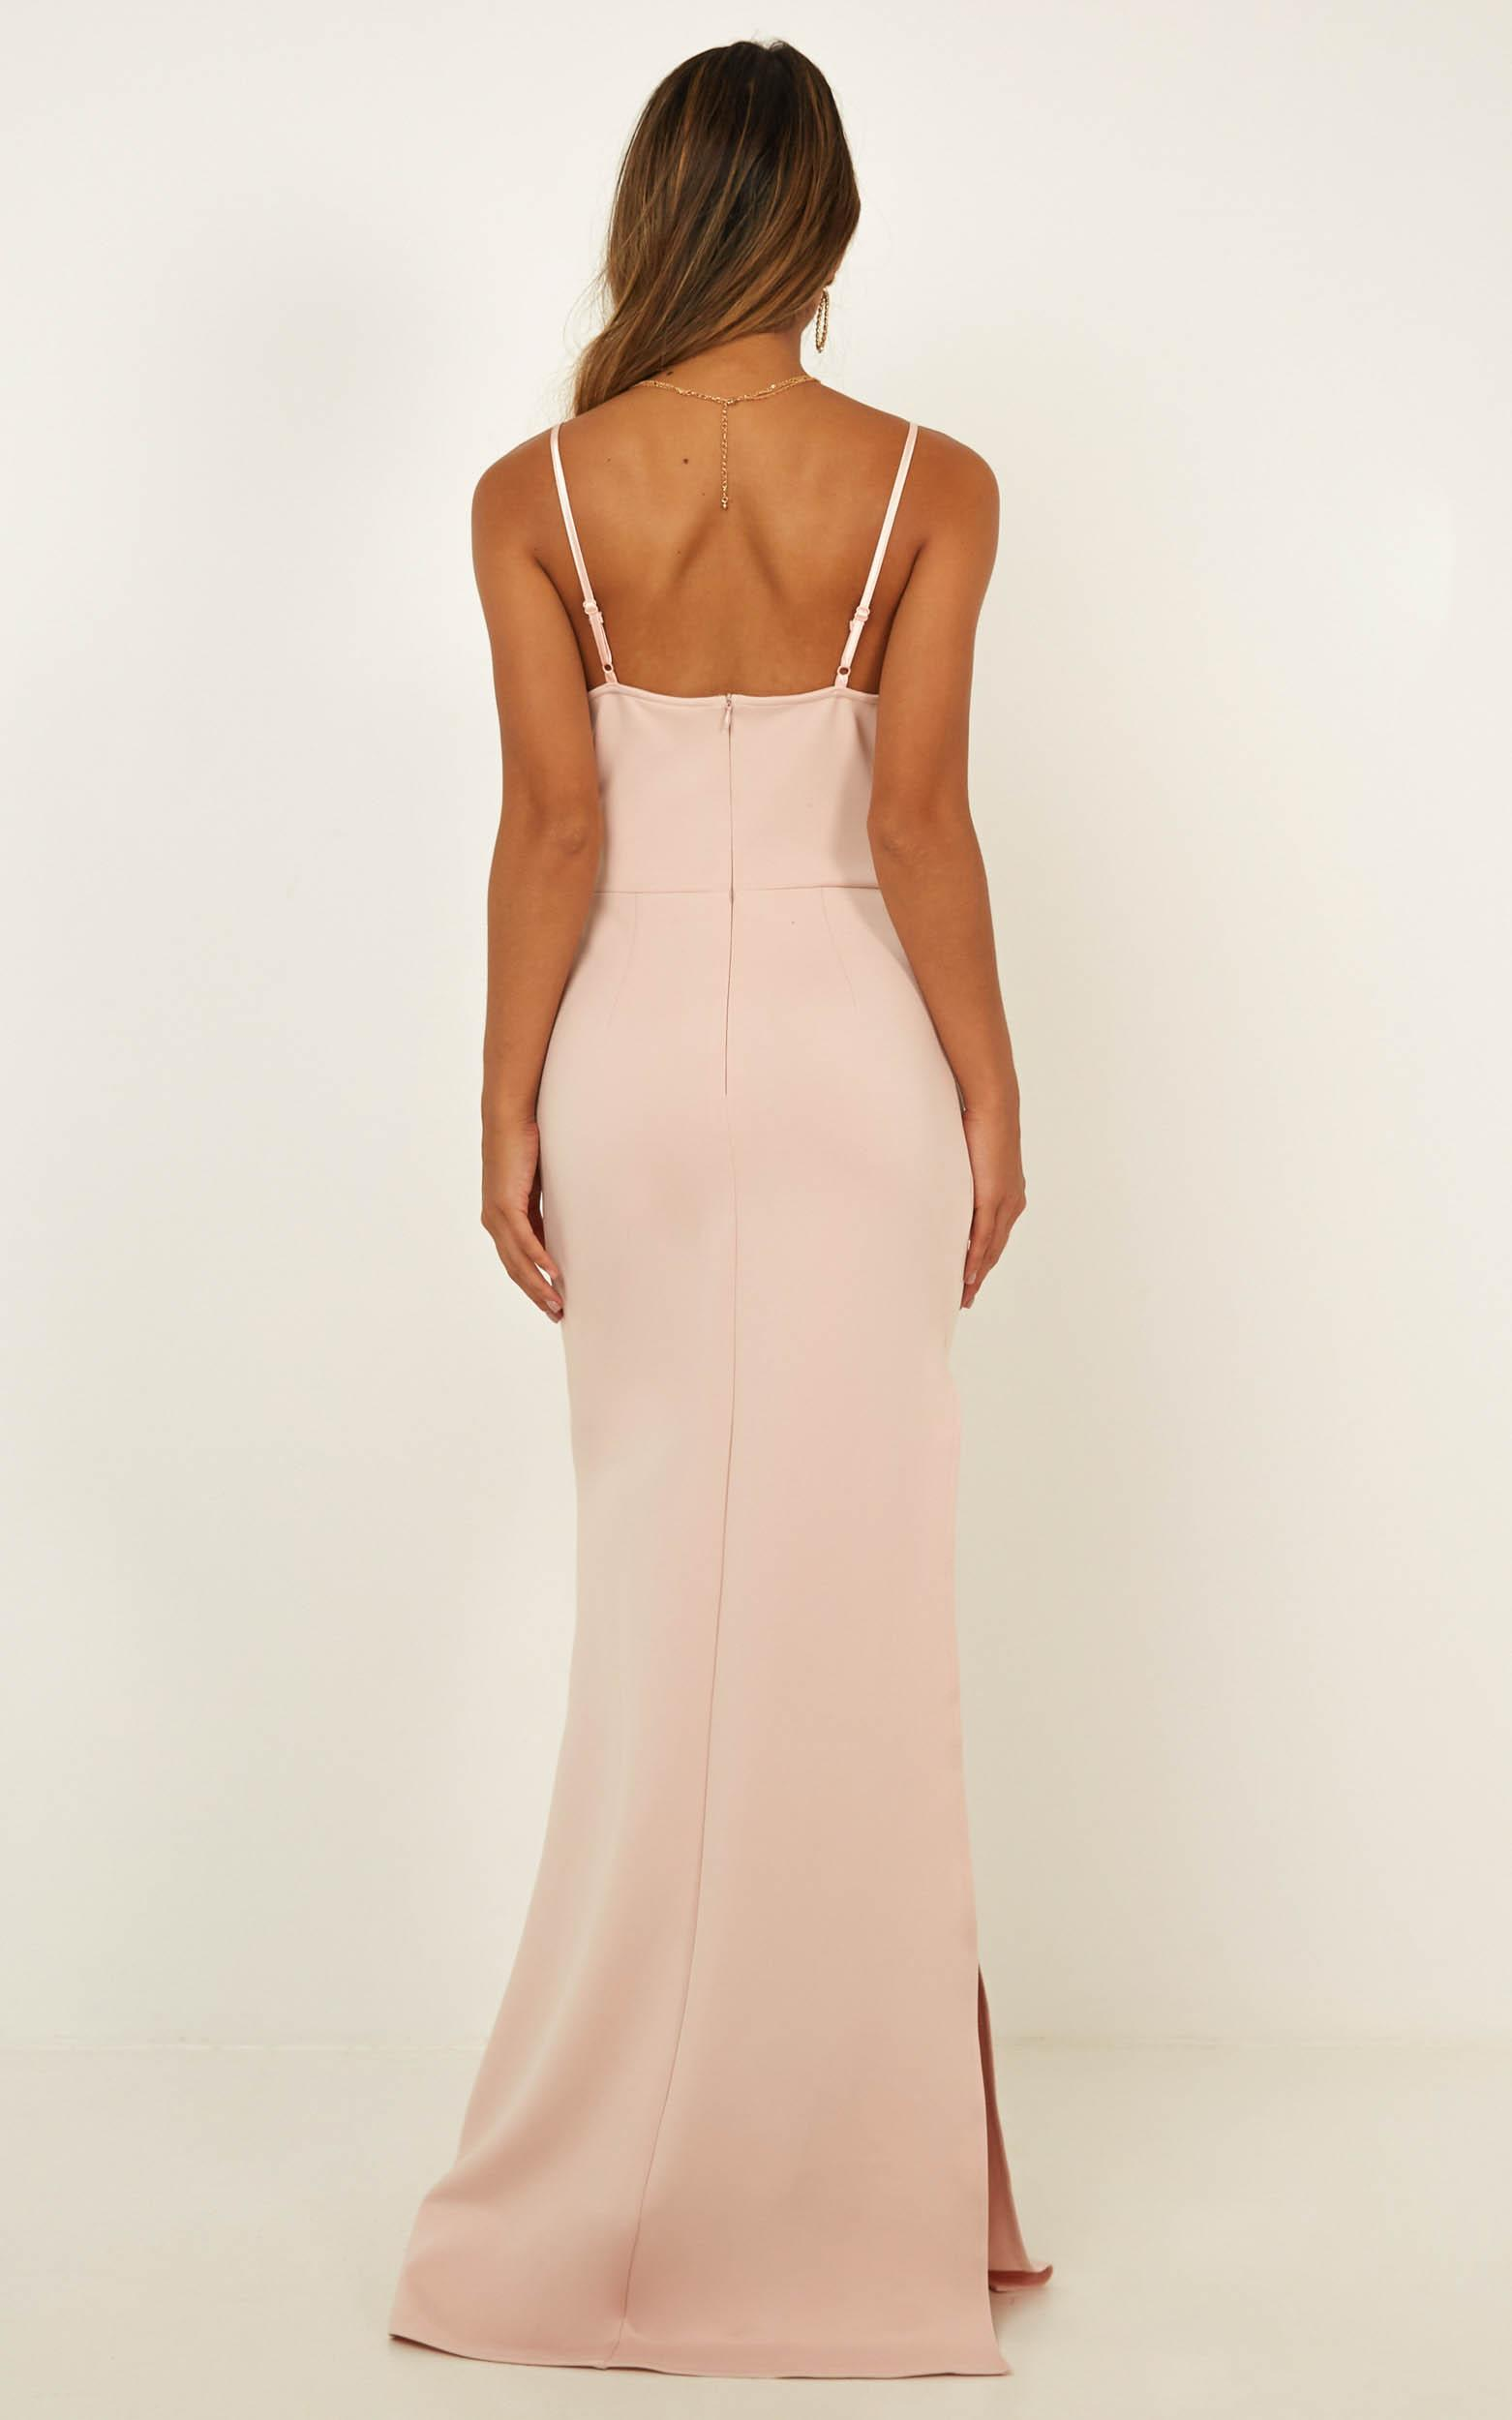 Linking Love Maxi Dress In Blush - 4 (XXS), Blush, hi-res image number null